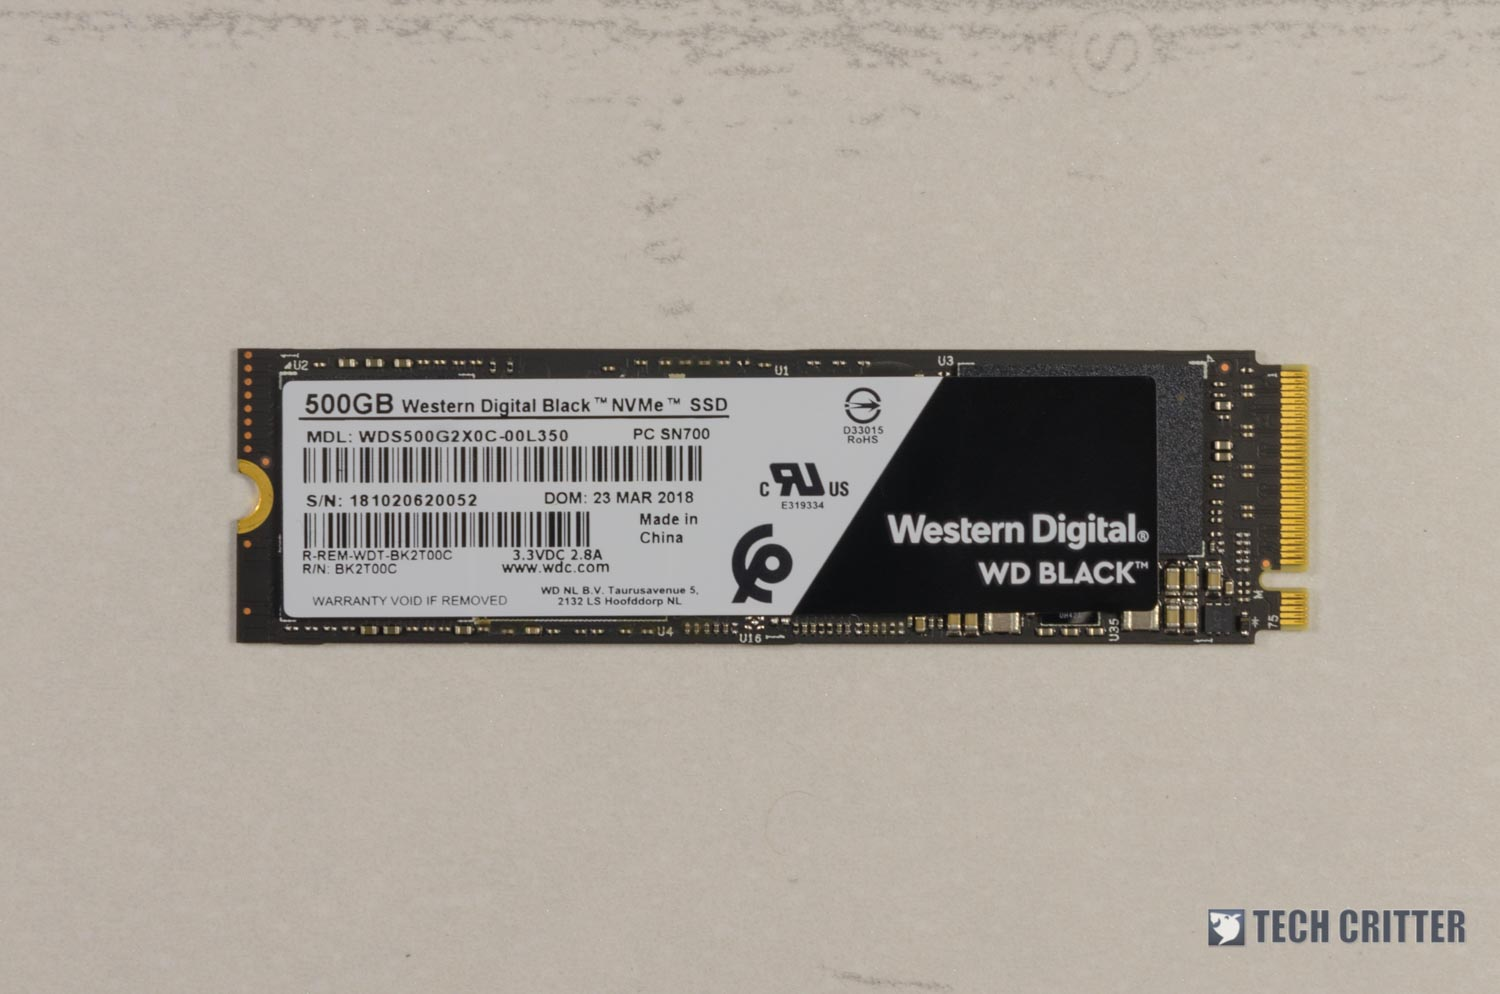 Unboxing & Review - WD Black 3D NAND NVMe SSD 500GB